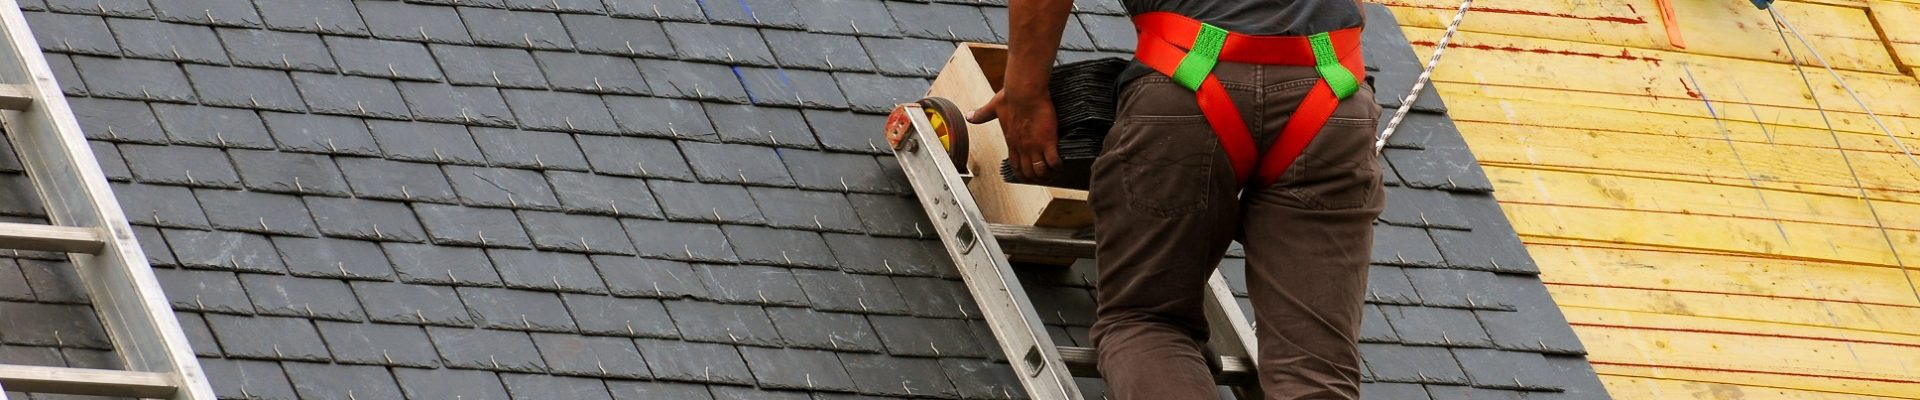 Important Warning About Roof Leaks And Mold